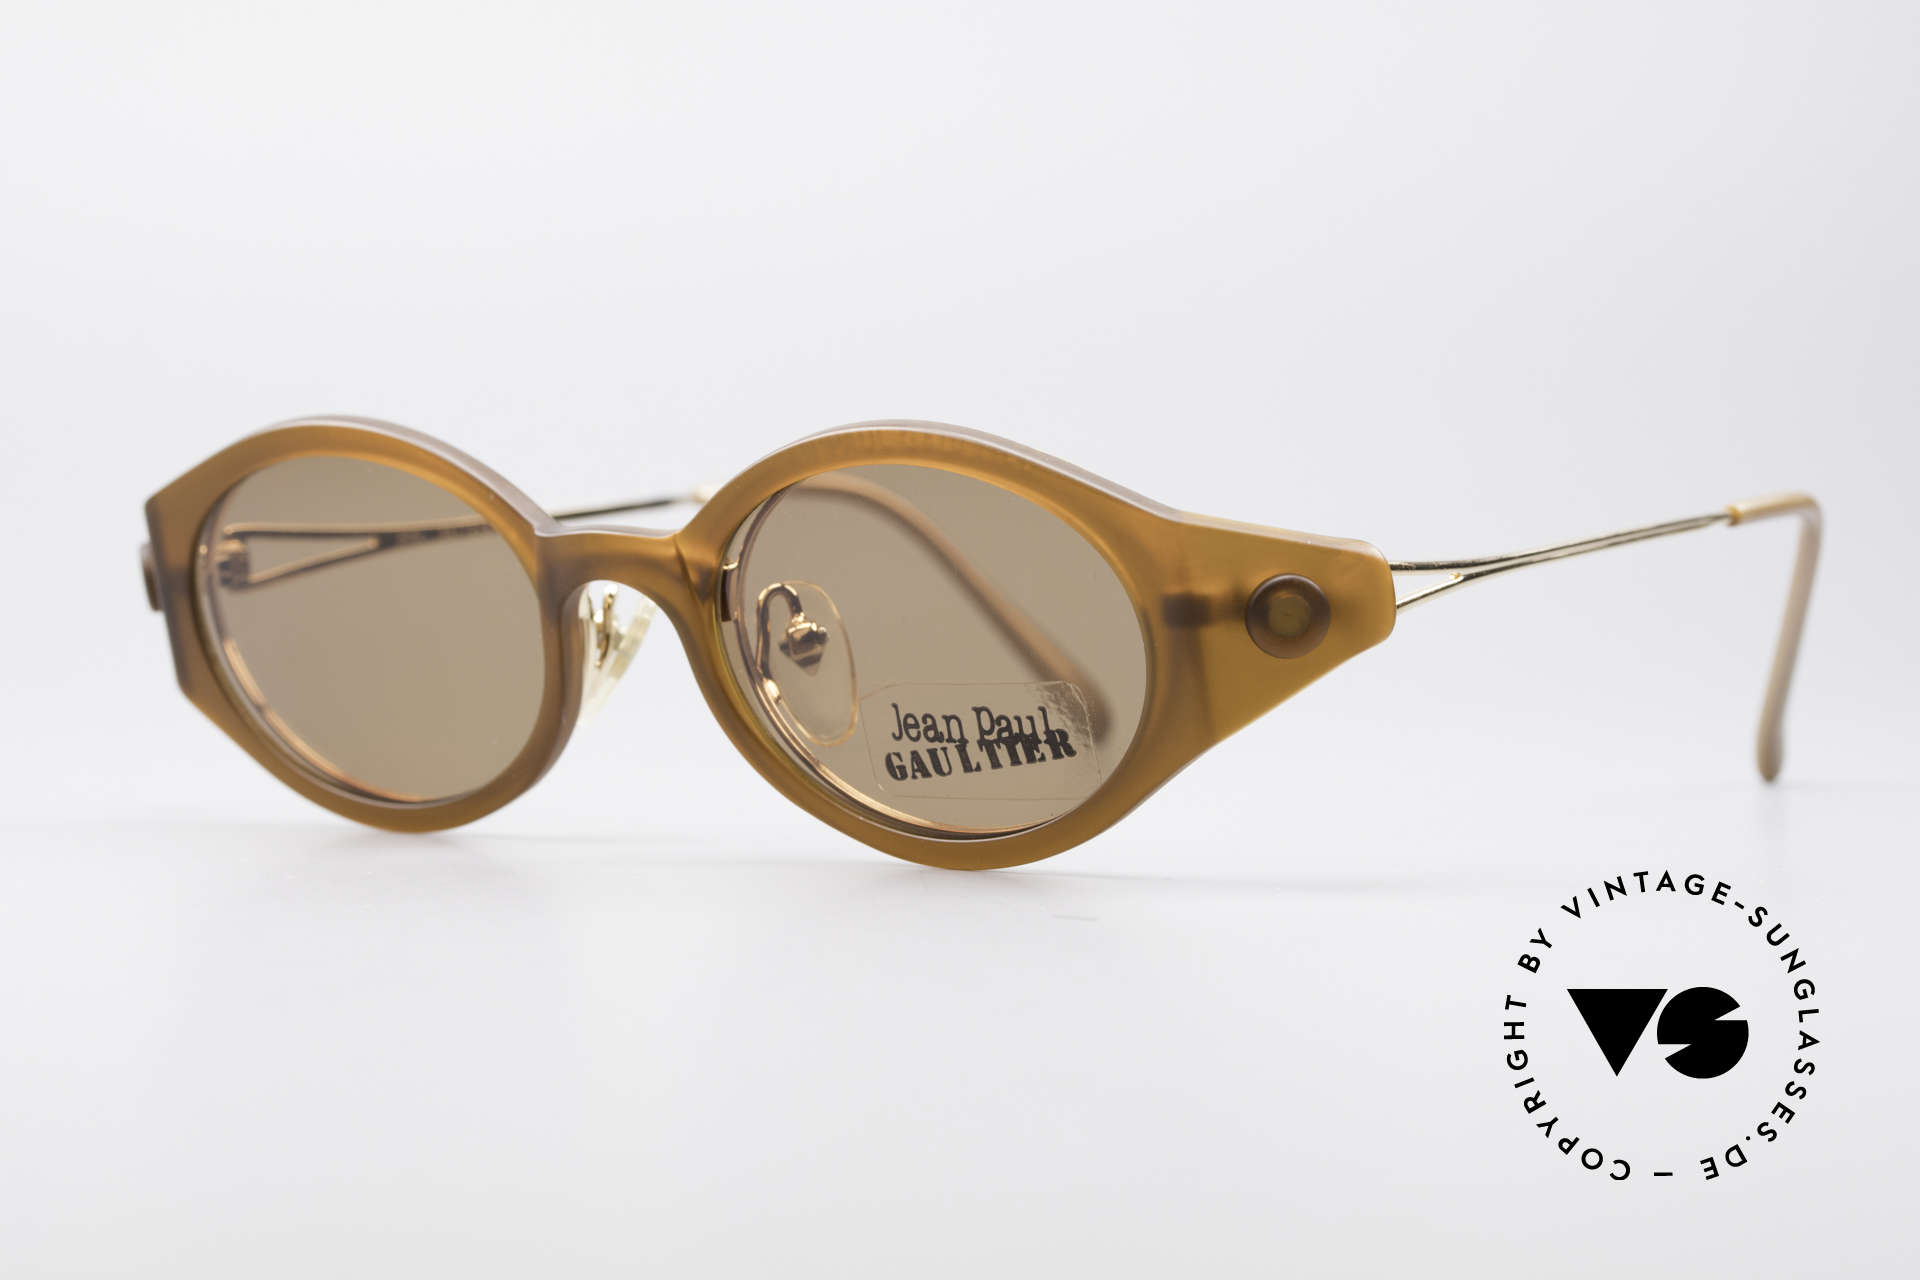 Jean Paul Gaultier 56-7202 Oval Frame With Sun Clip, best craftsmanship & 1. class comfort (made in Japan), Made for Men and Women